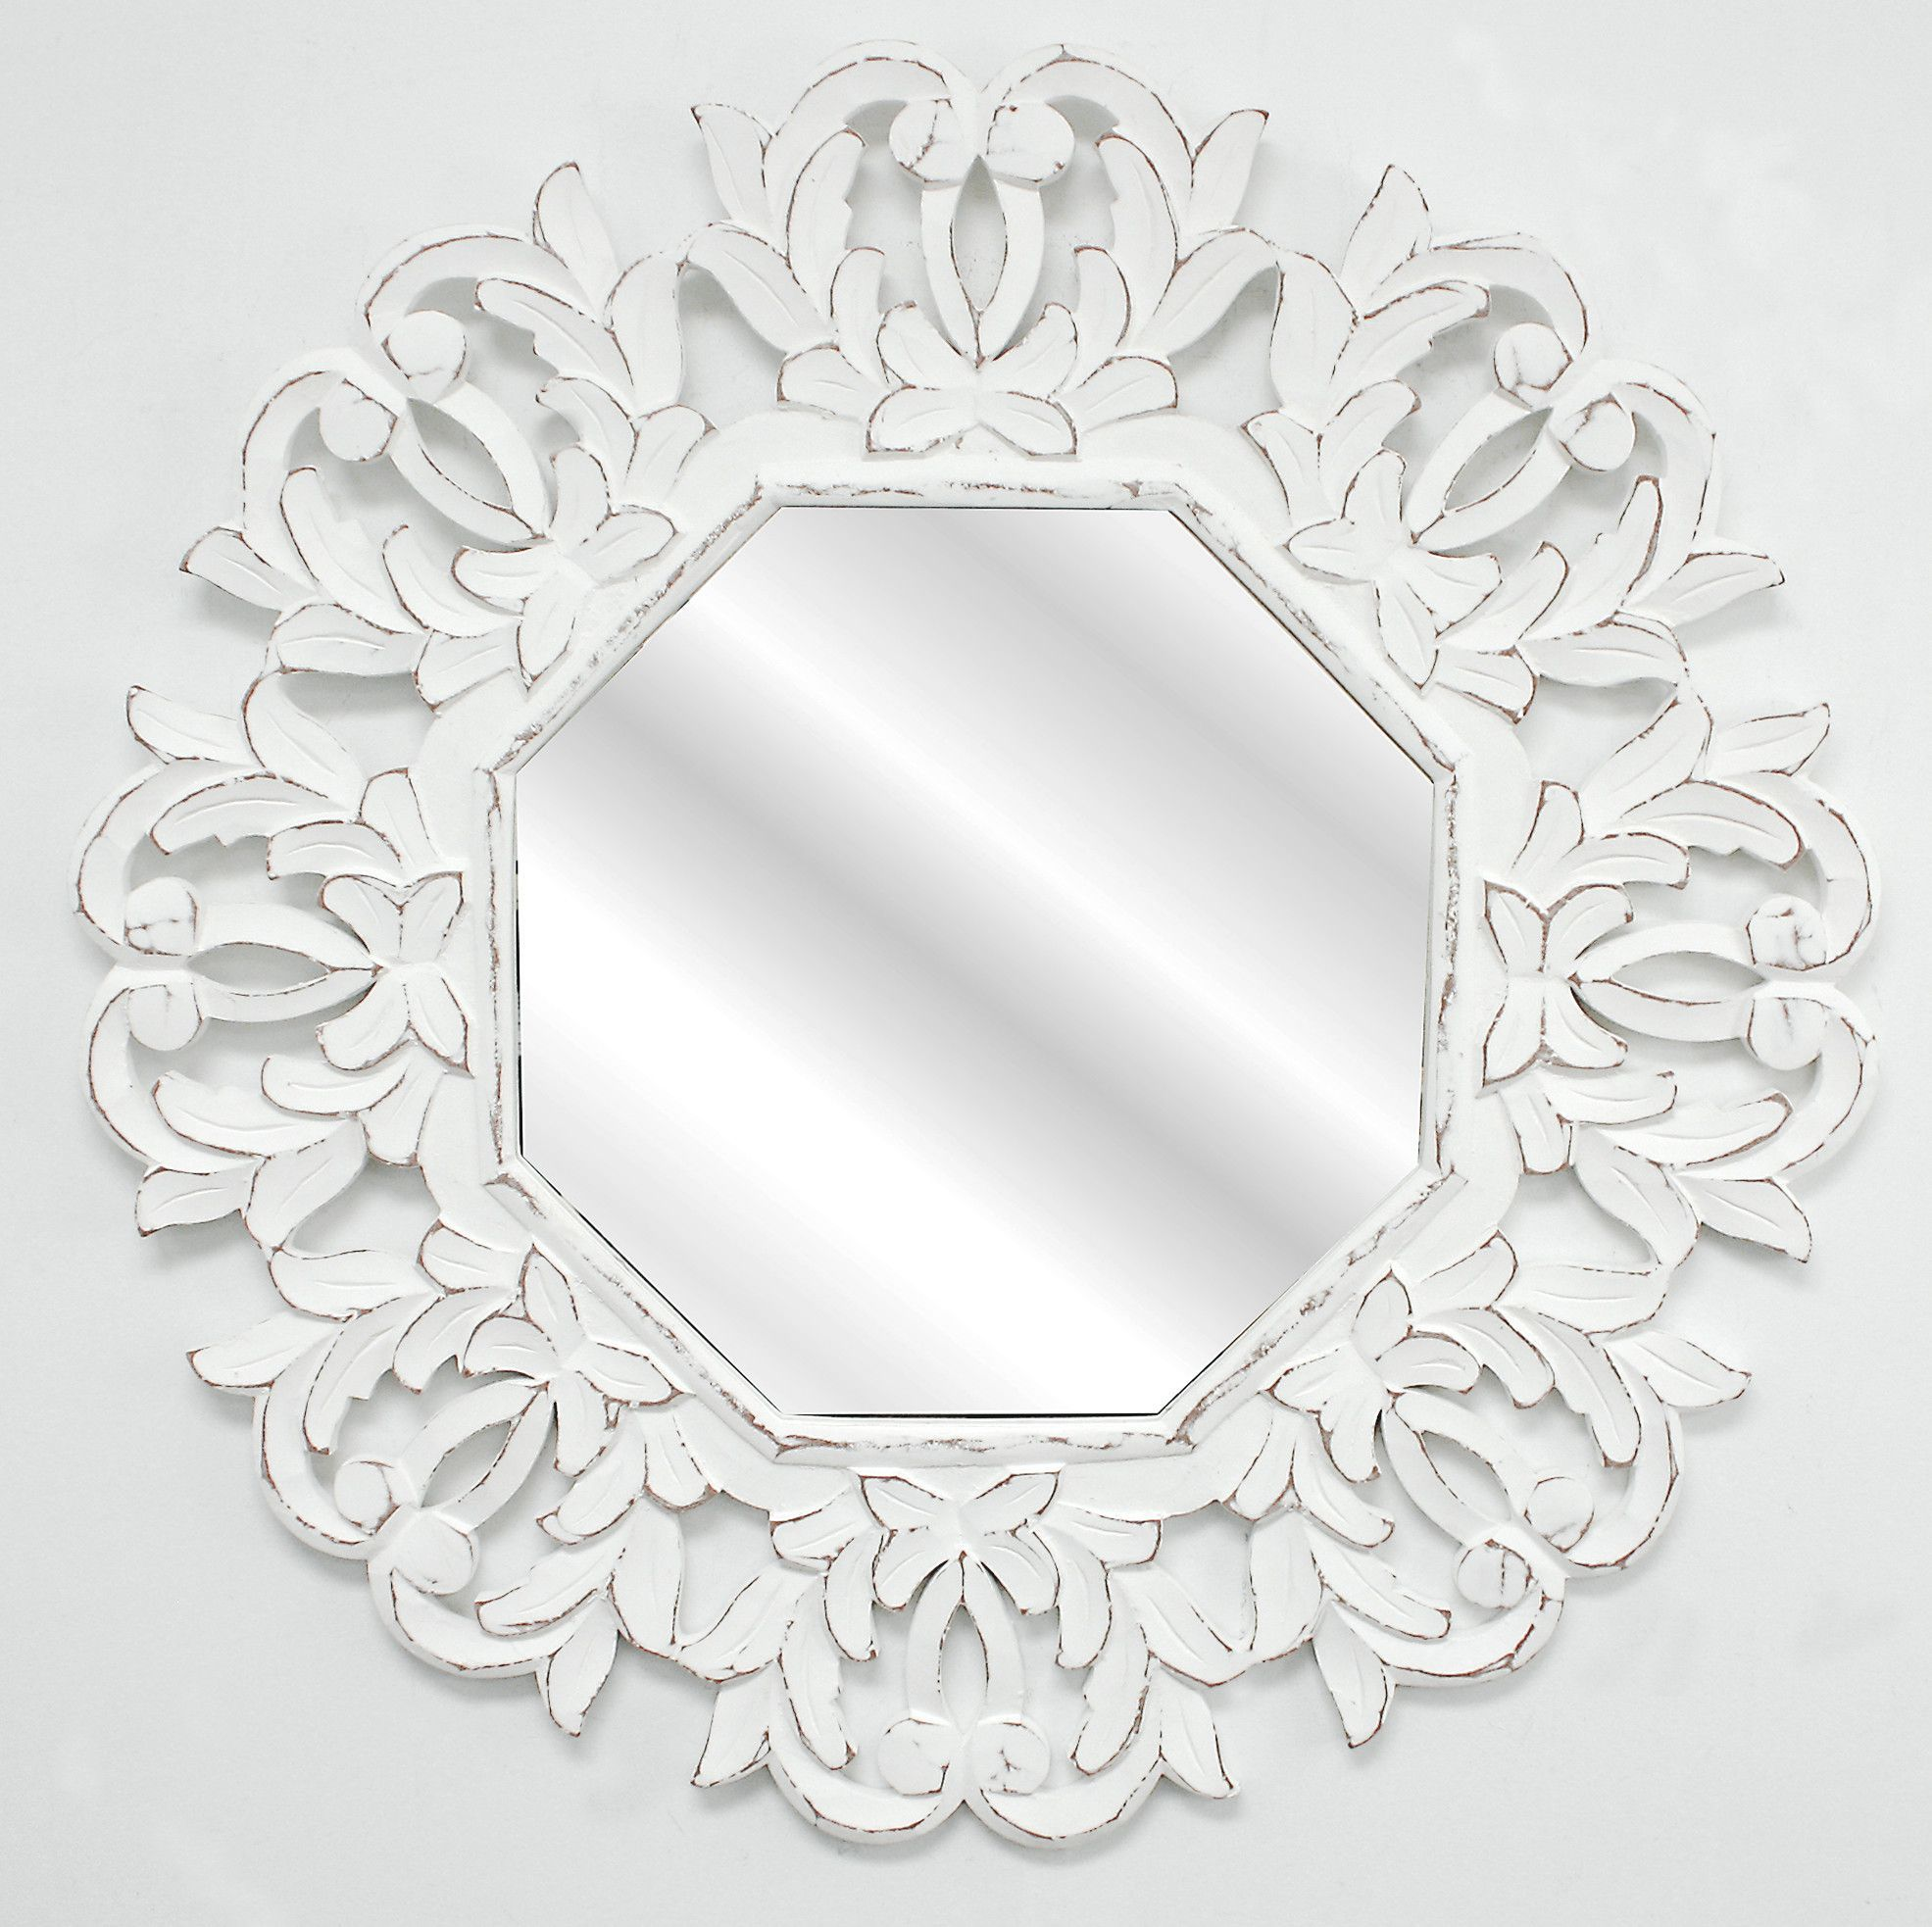 Tull Wall Mirror | Products | Pinterest